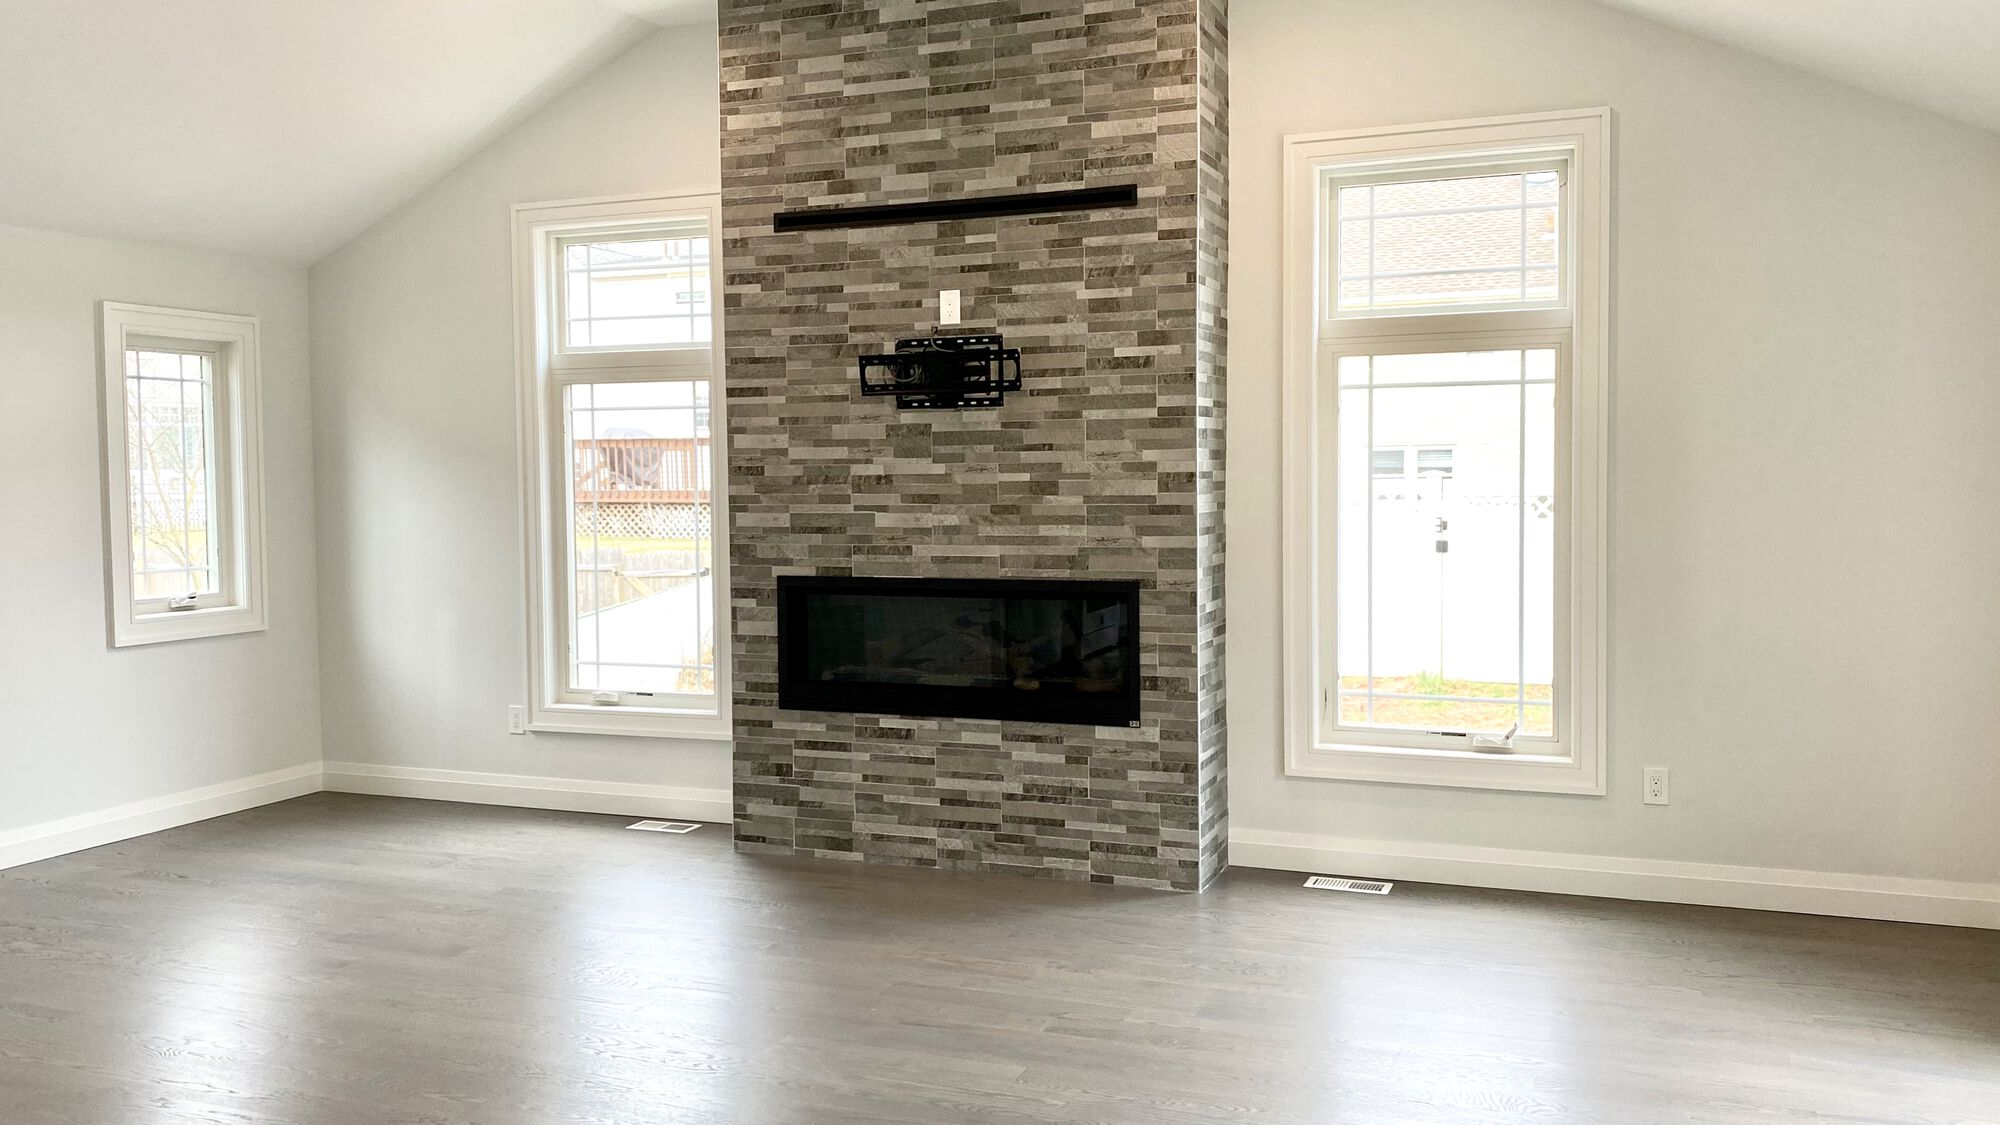 Family Room Addition with Vaulted Ceilings, Wood Flooring, Stone Fireplace, Andersen Windows and Patio Doors in Cranford, Union County NJ